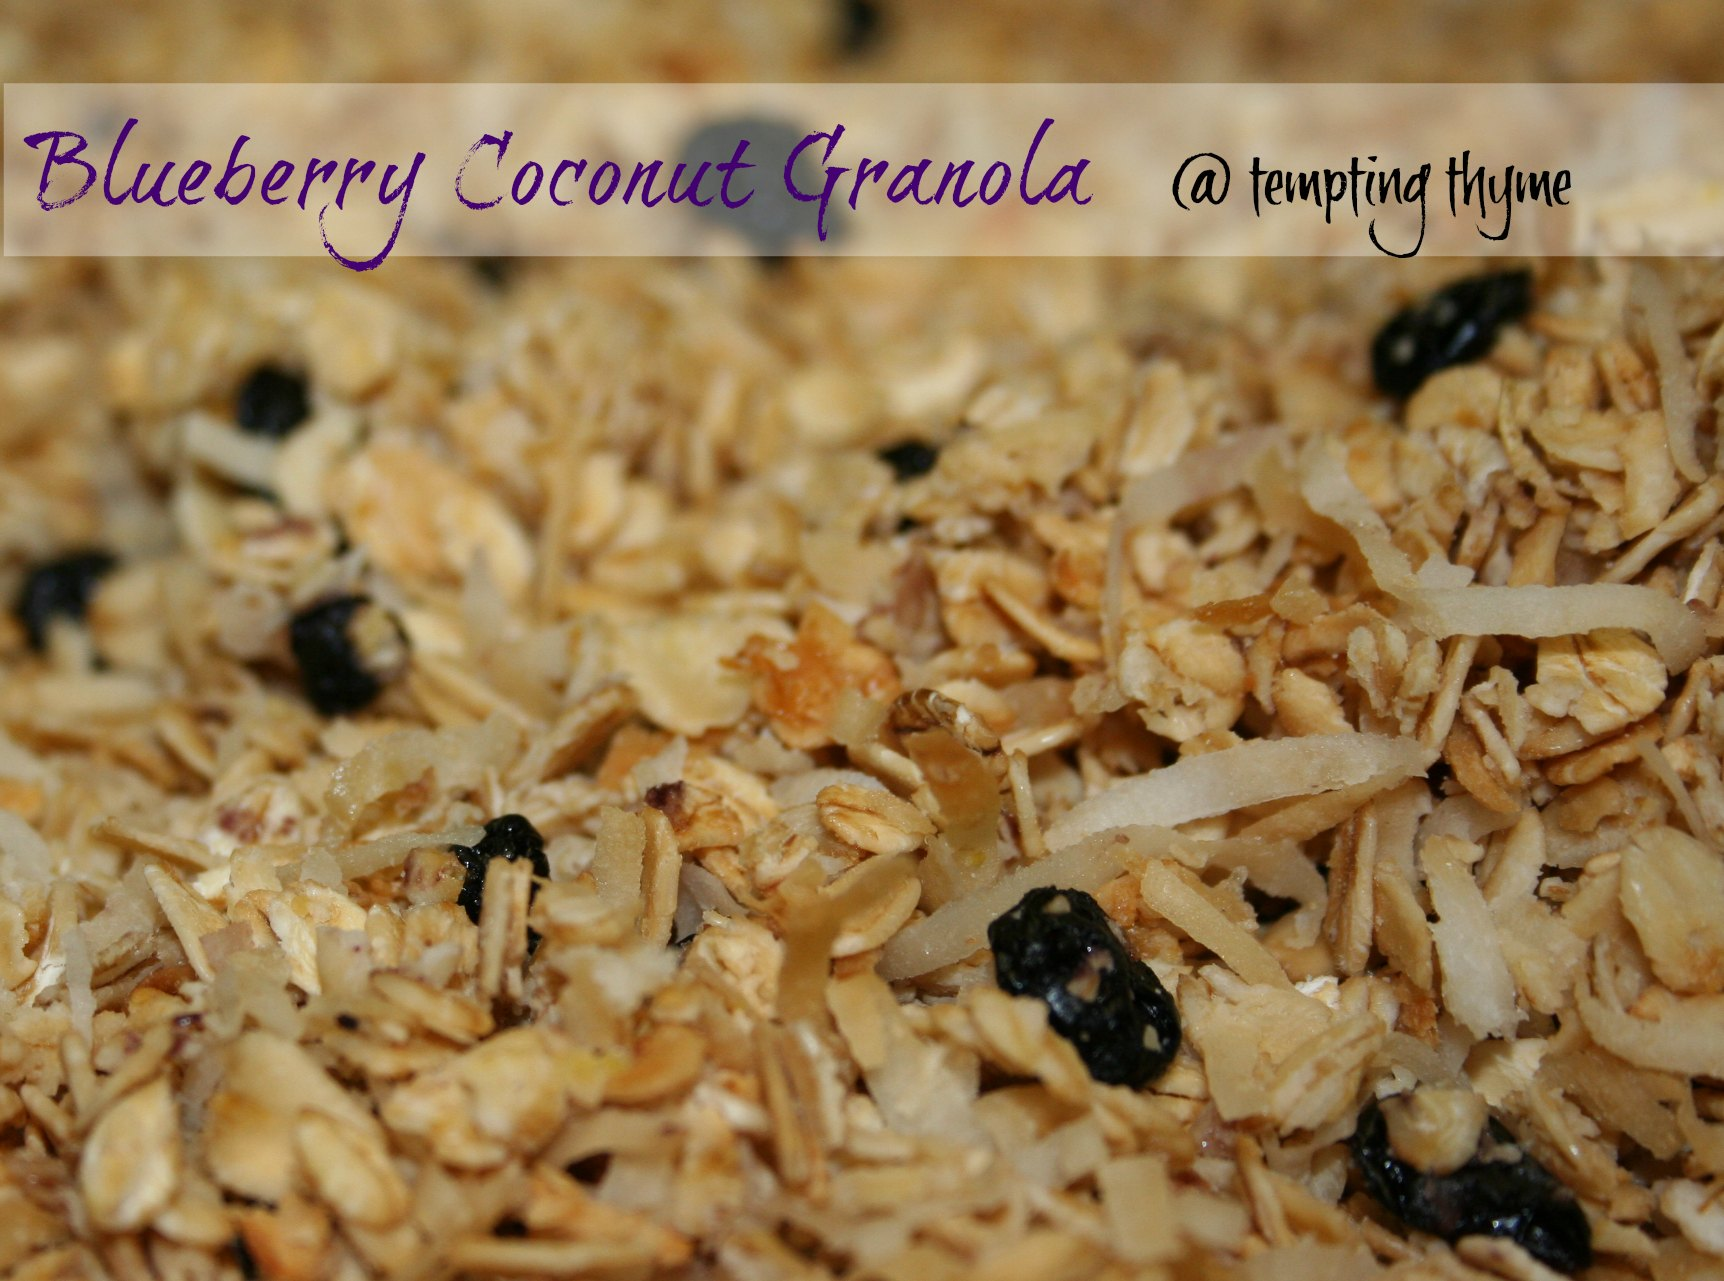 Blueberry Coconut Granola-Tempting Thyme